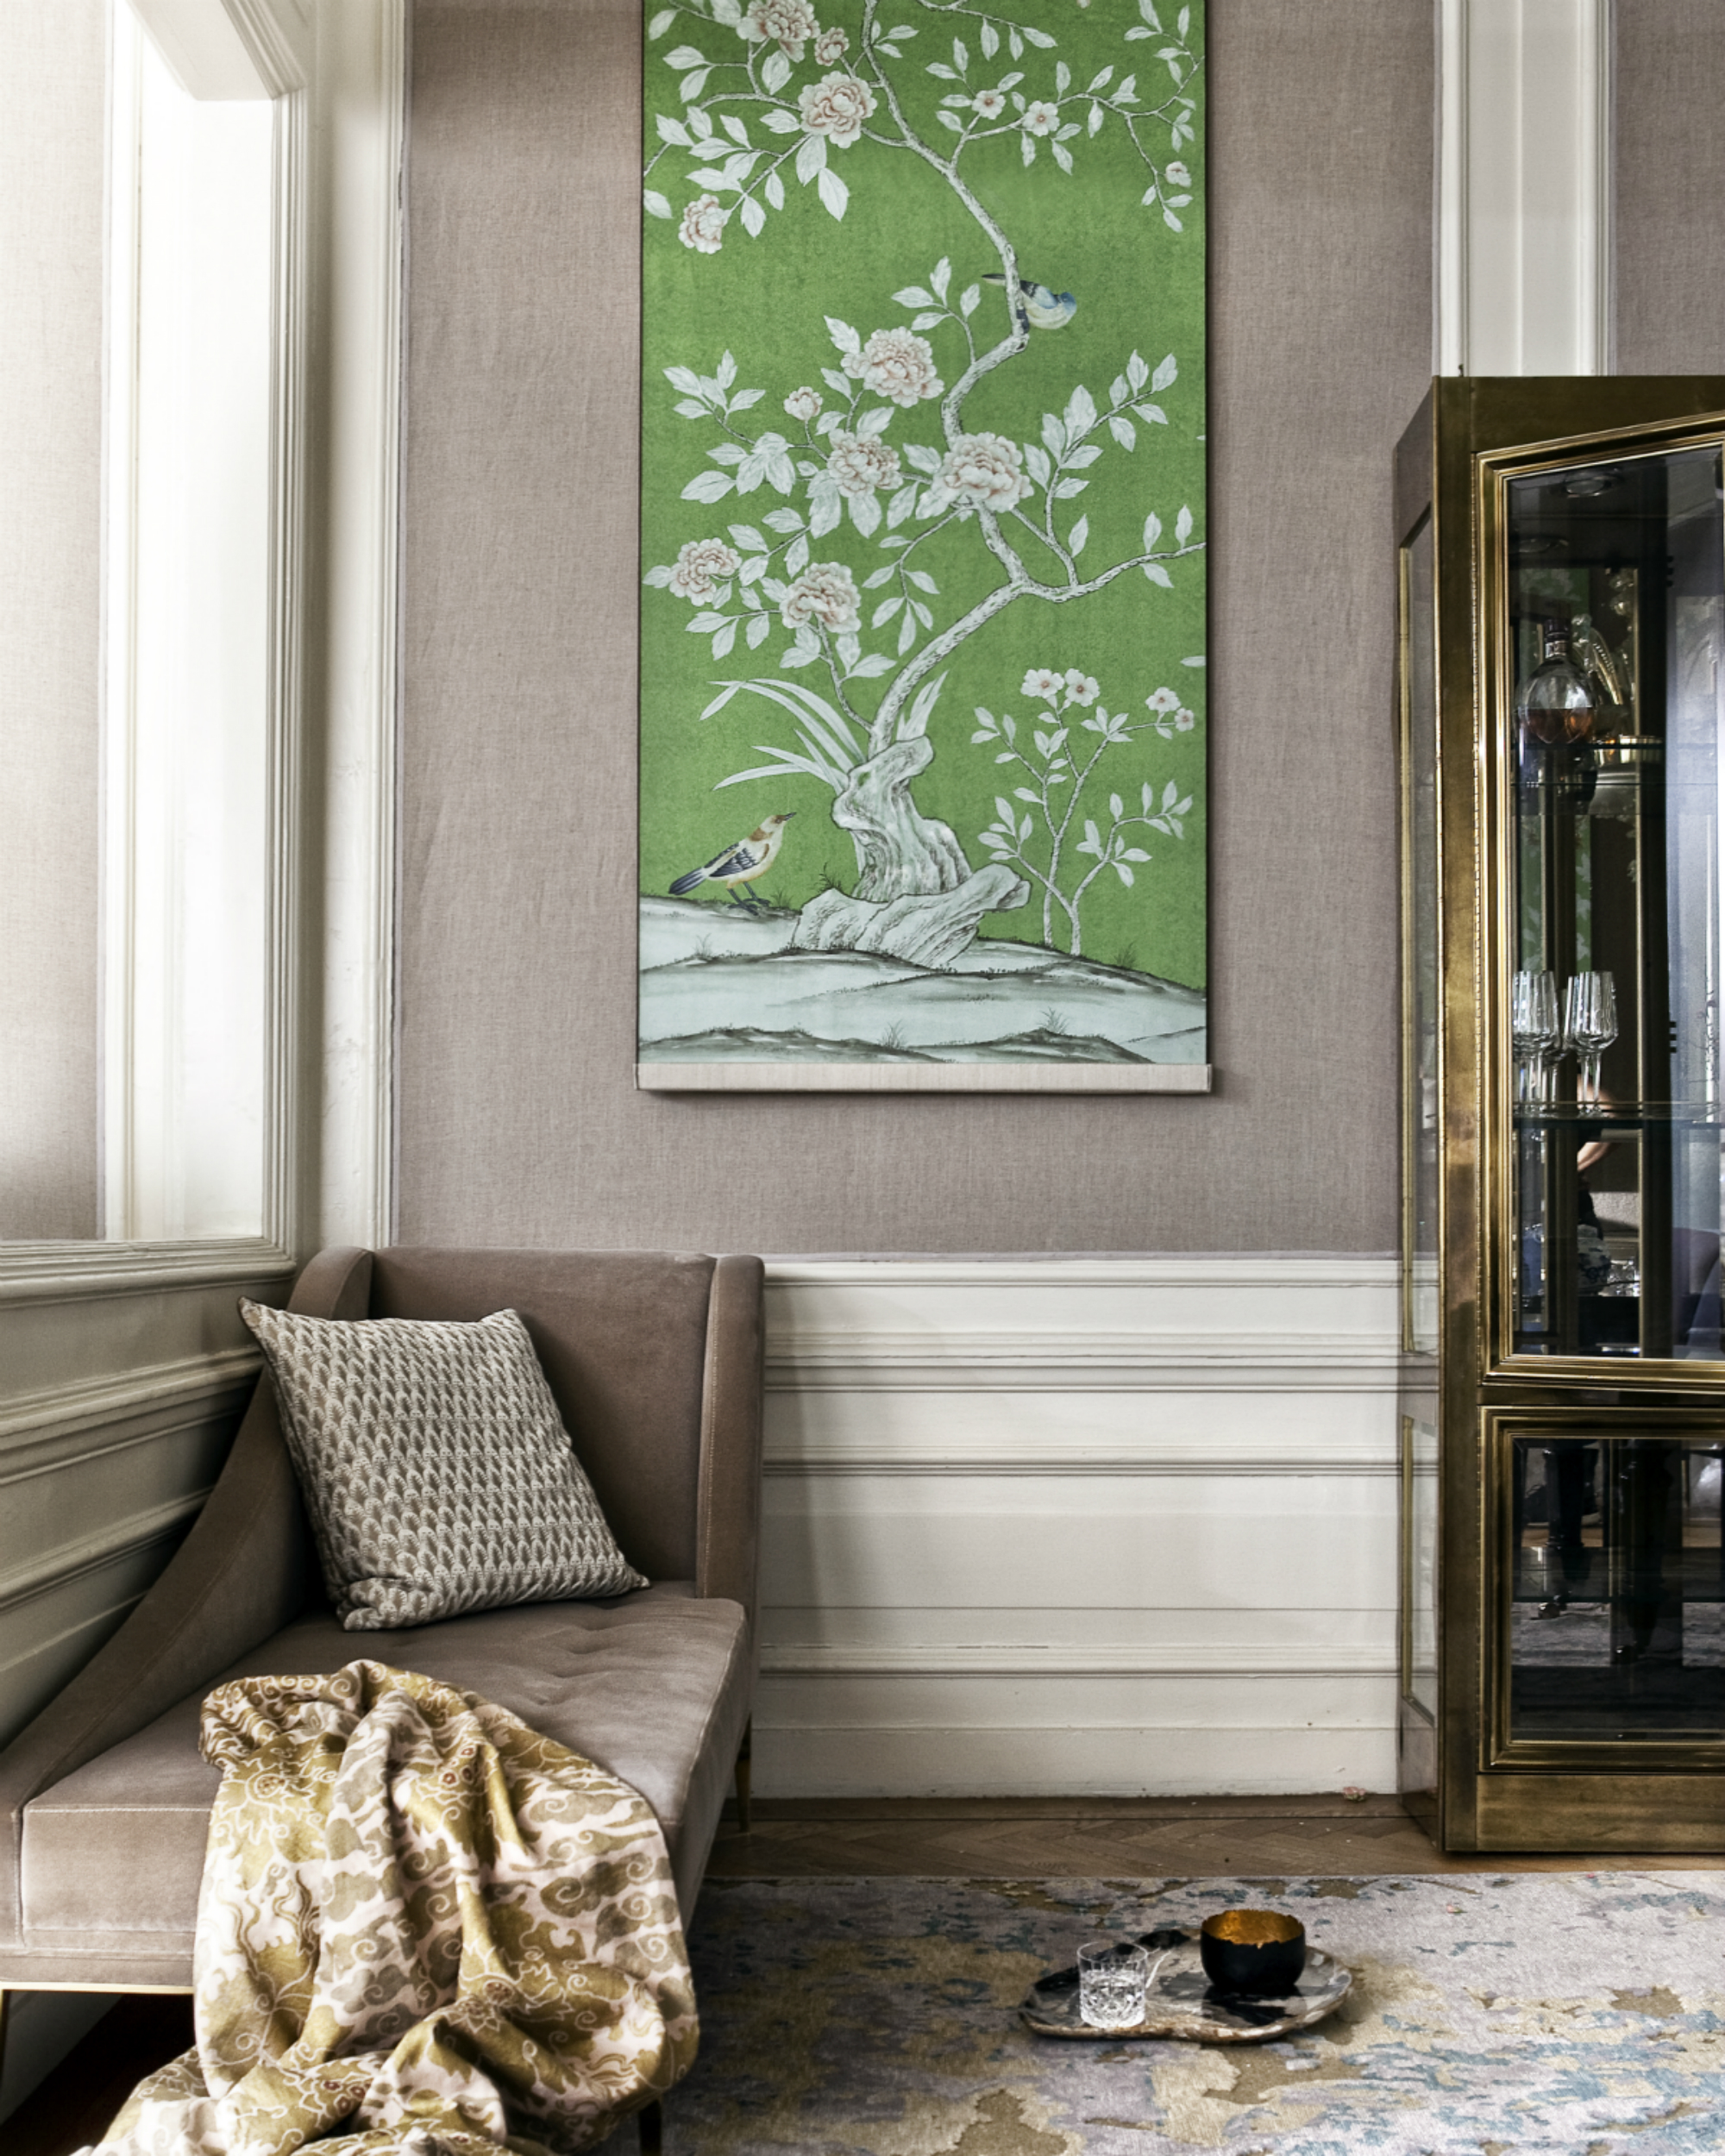 Dining Chair Trends For 2016: How To Decorate Your Living Room According To Autumn